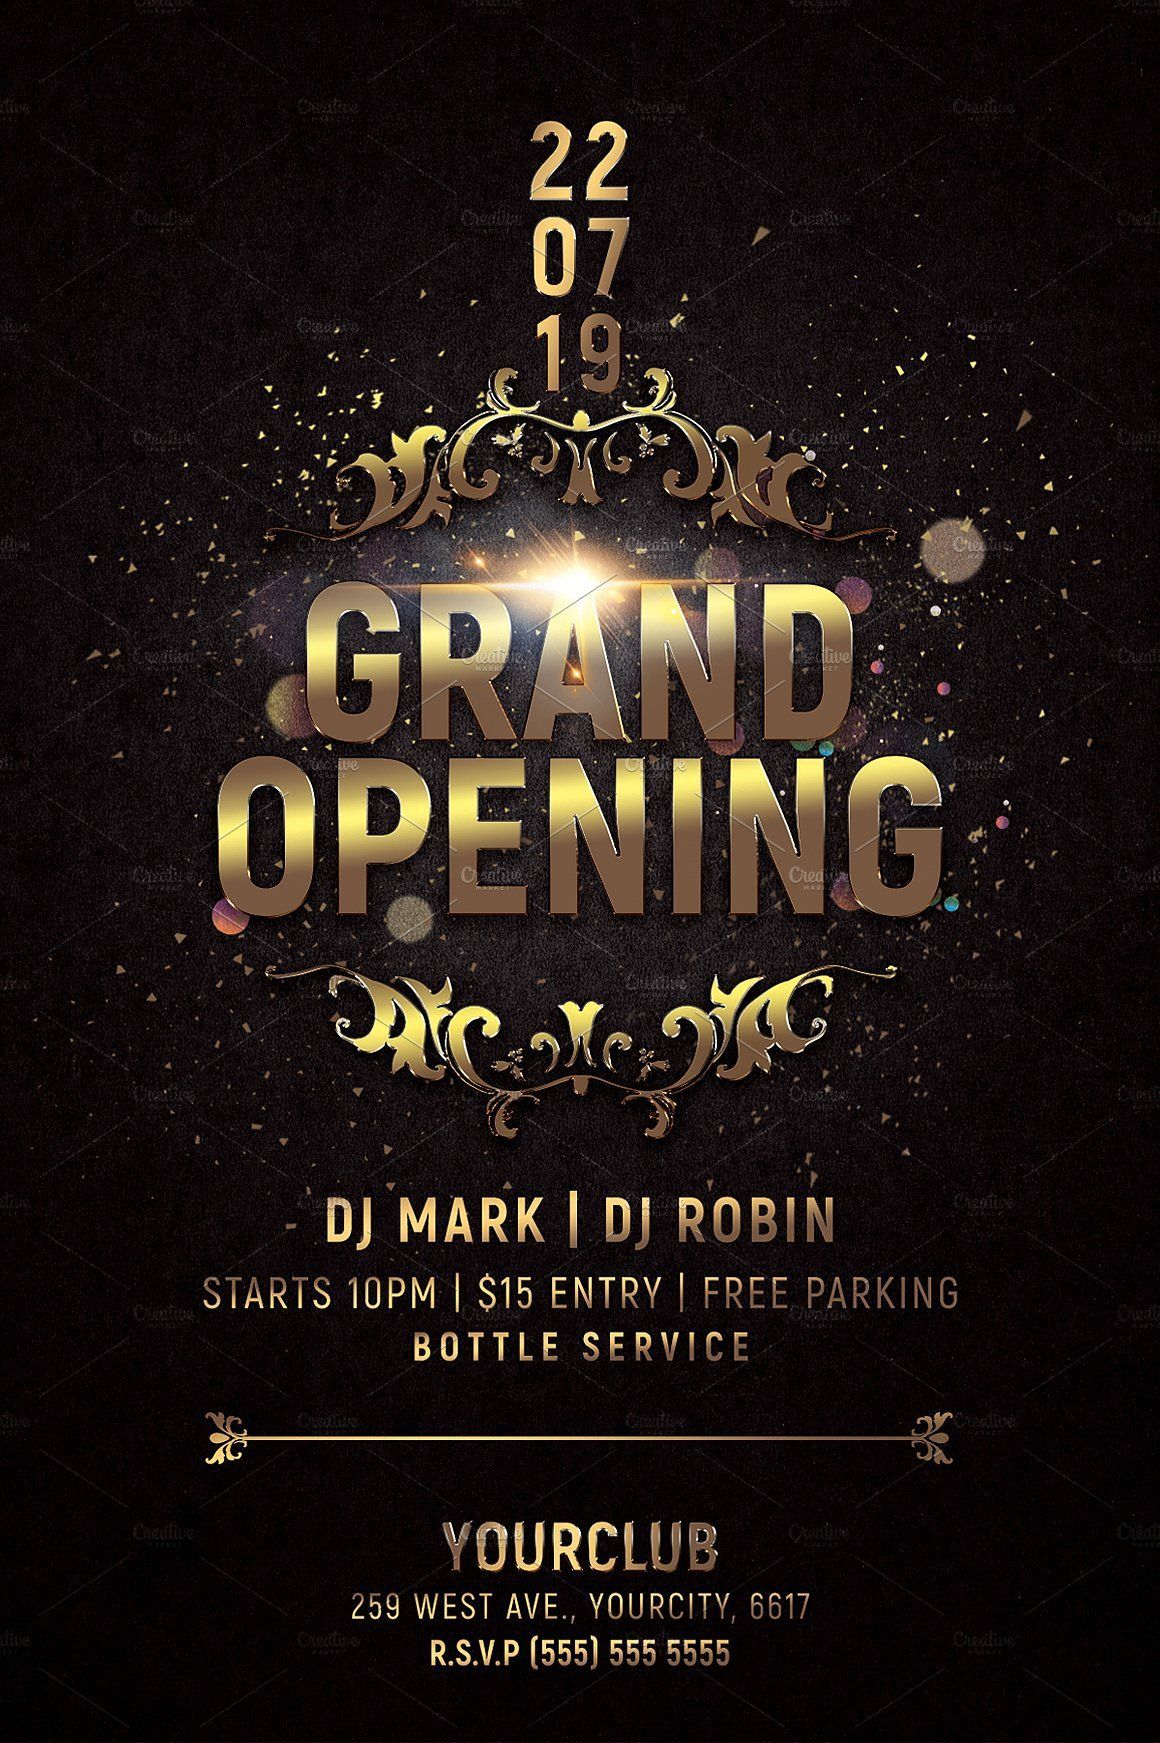 000 Awful Grand Opening Flyer Template Photo  Free Psd BusinesFull